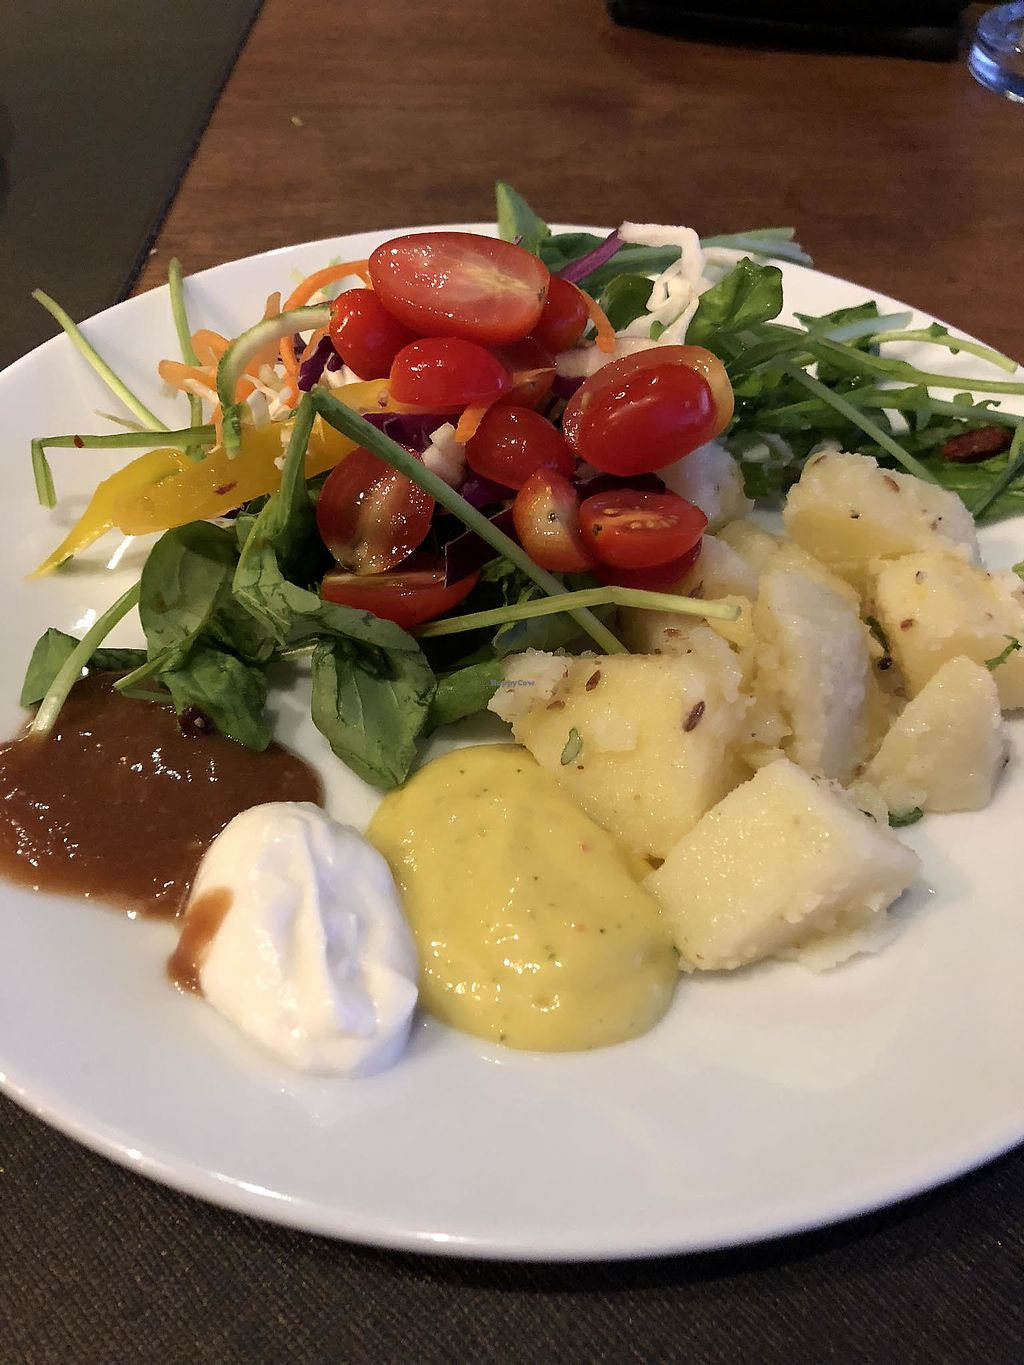 """Photo of Santosa  by <a href=""""/members/profile/CarrieLeBlanc"""">CarrieLeBlanc</a> <br/>Salad plate including cold potato salad. Mango and  Tamarind dressings, plus mayo. All delicious <br/> March 4, 2018  - <a href='/contact/abuse/image/46587/366503'>Report</a>"""